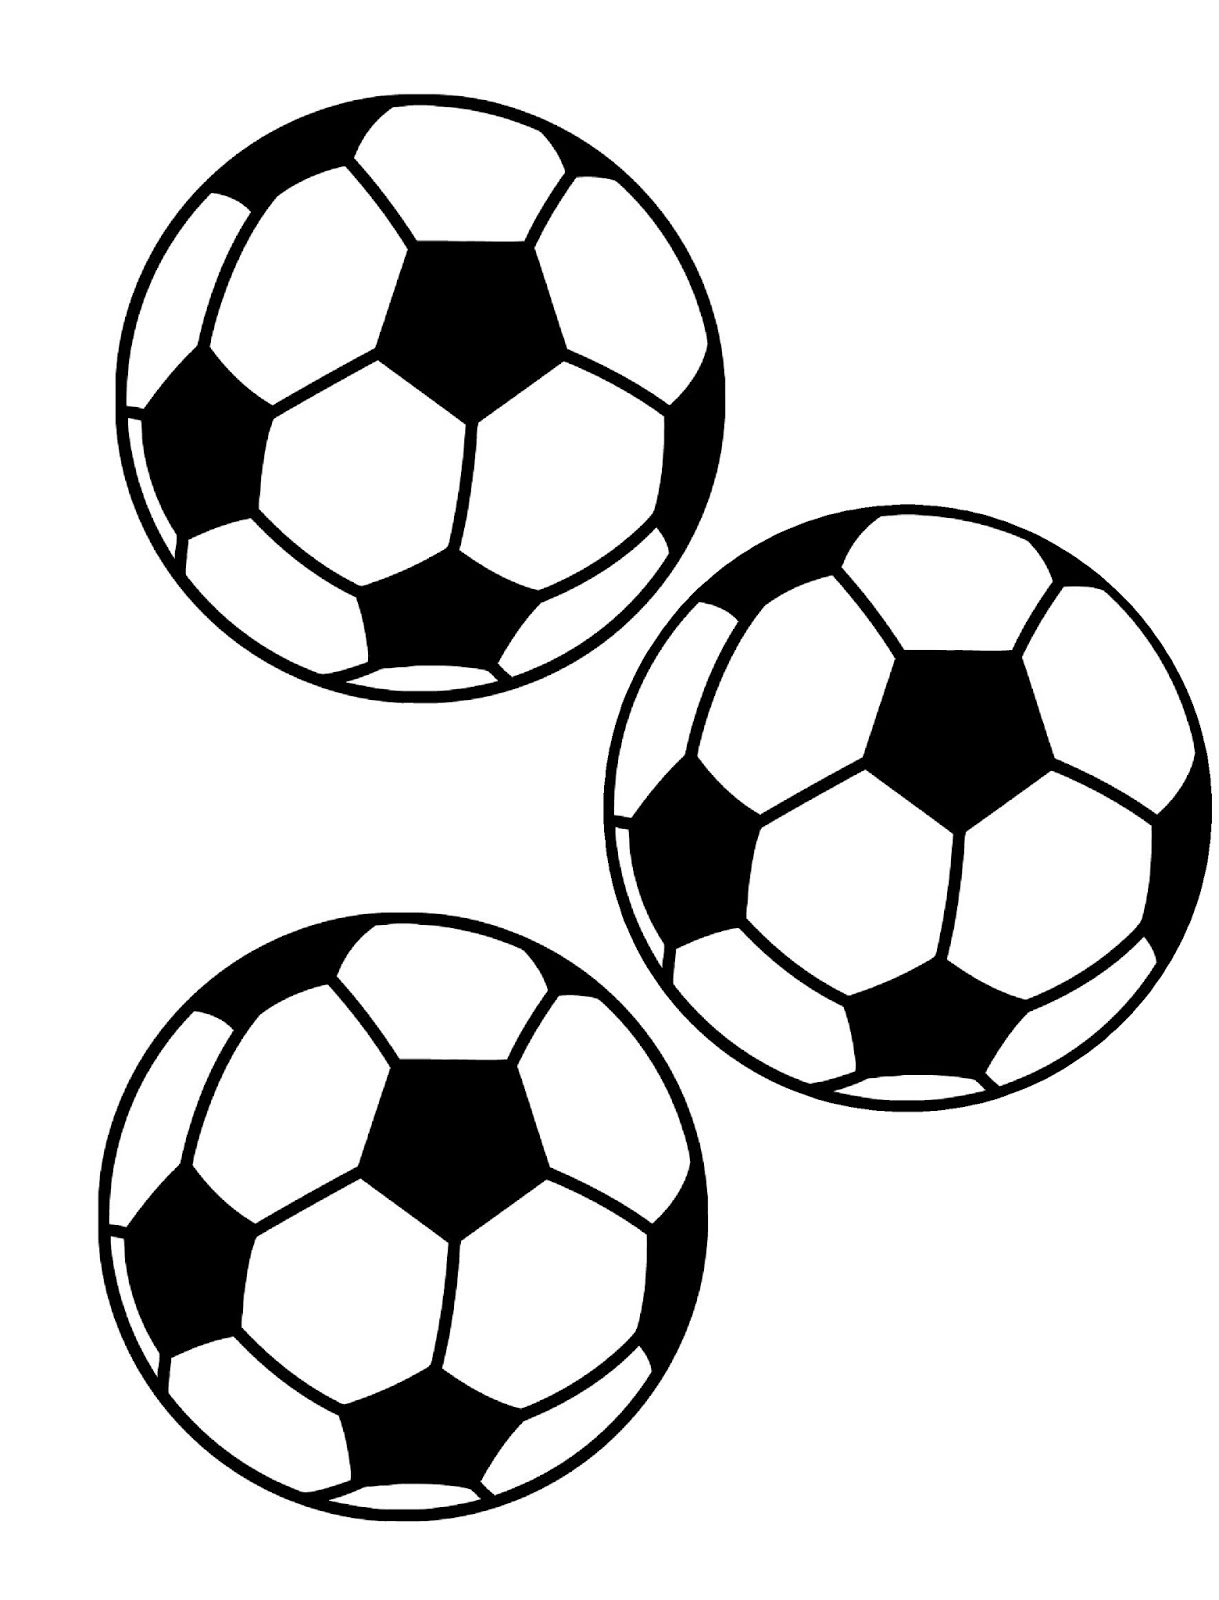 ball coloring pages cool free volleyball ball coloring page coloring pages coloring ball pages